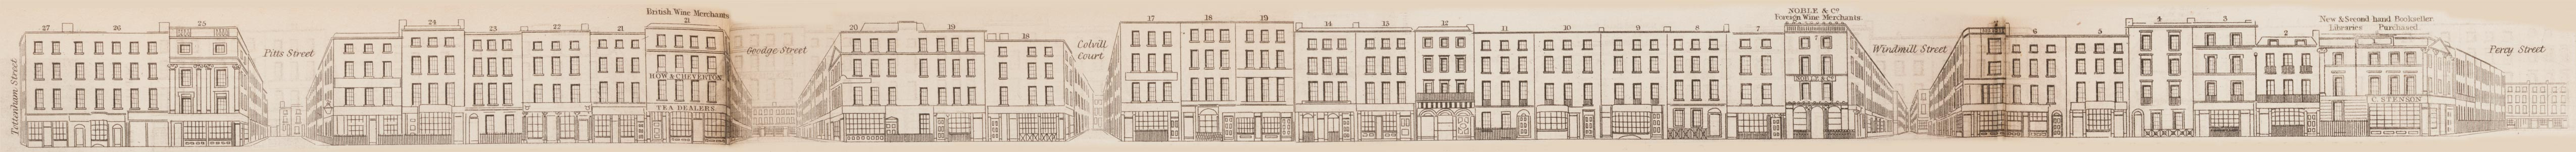 map - Tallis's London street views : No. 82. Charlotte Street, Fitzroy Square (east)